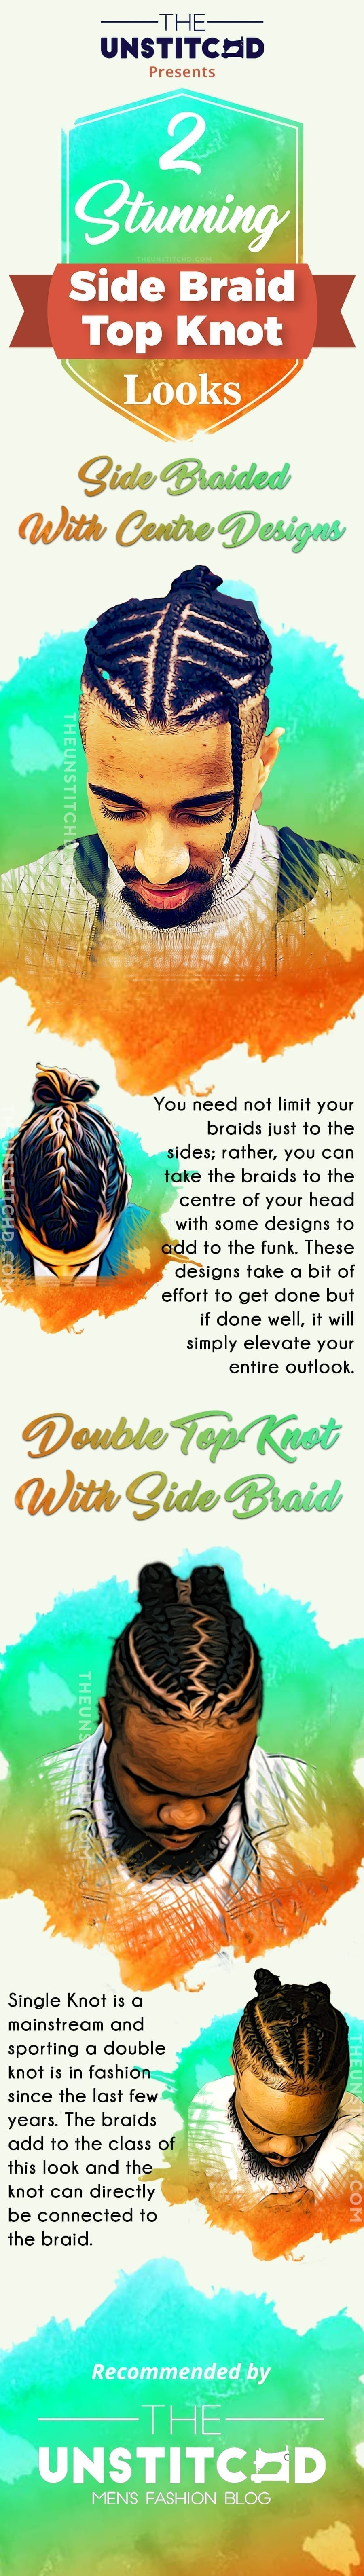 Side-Braid-top-knot-info